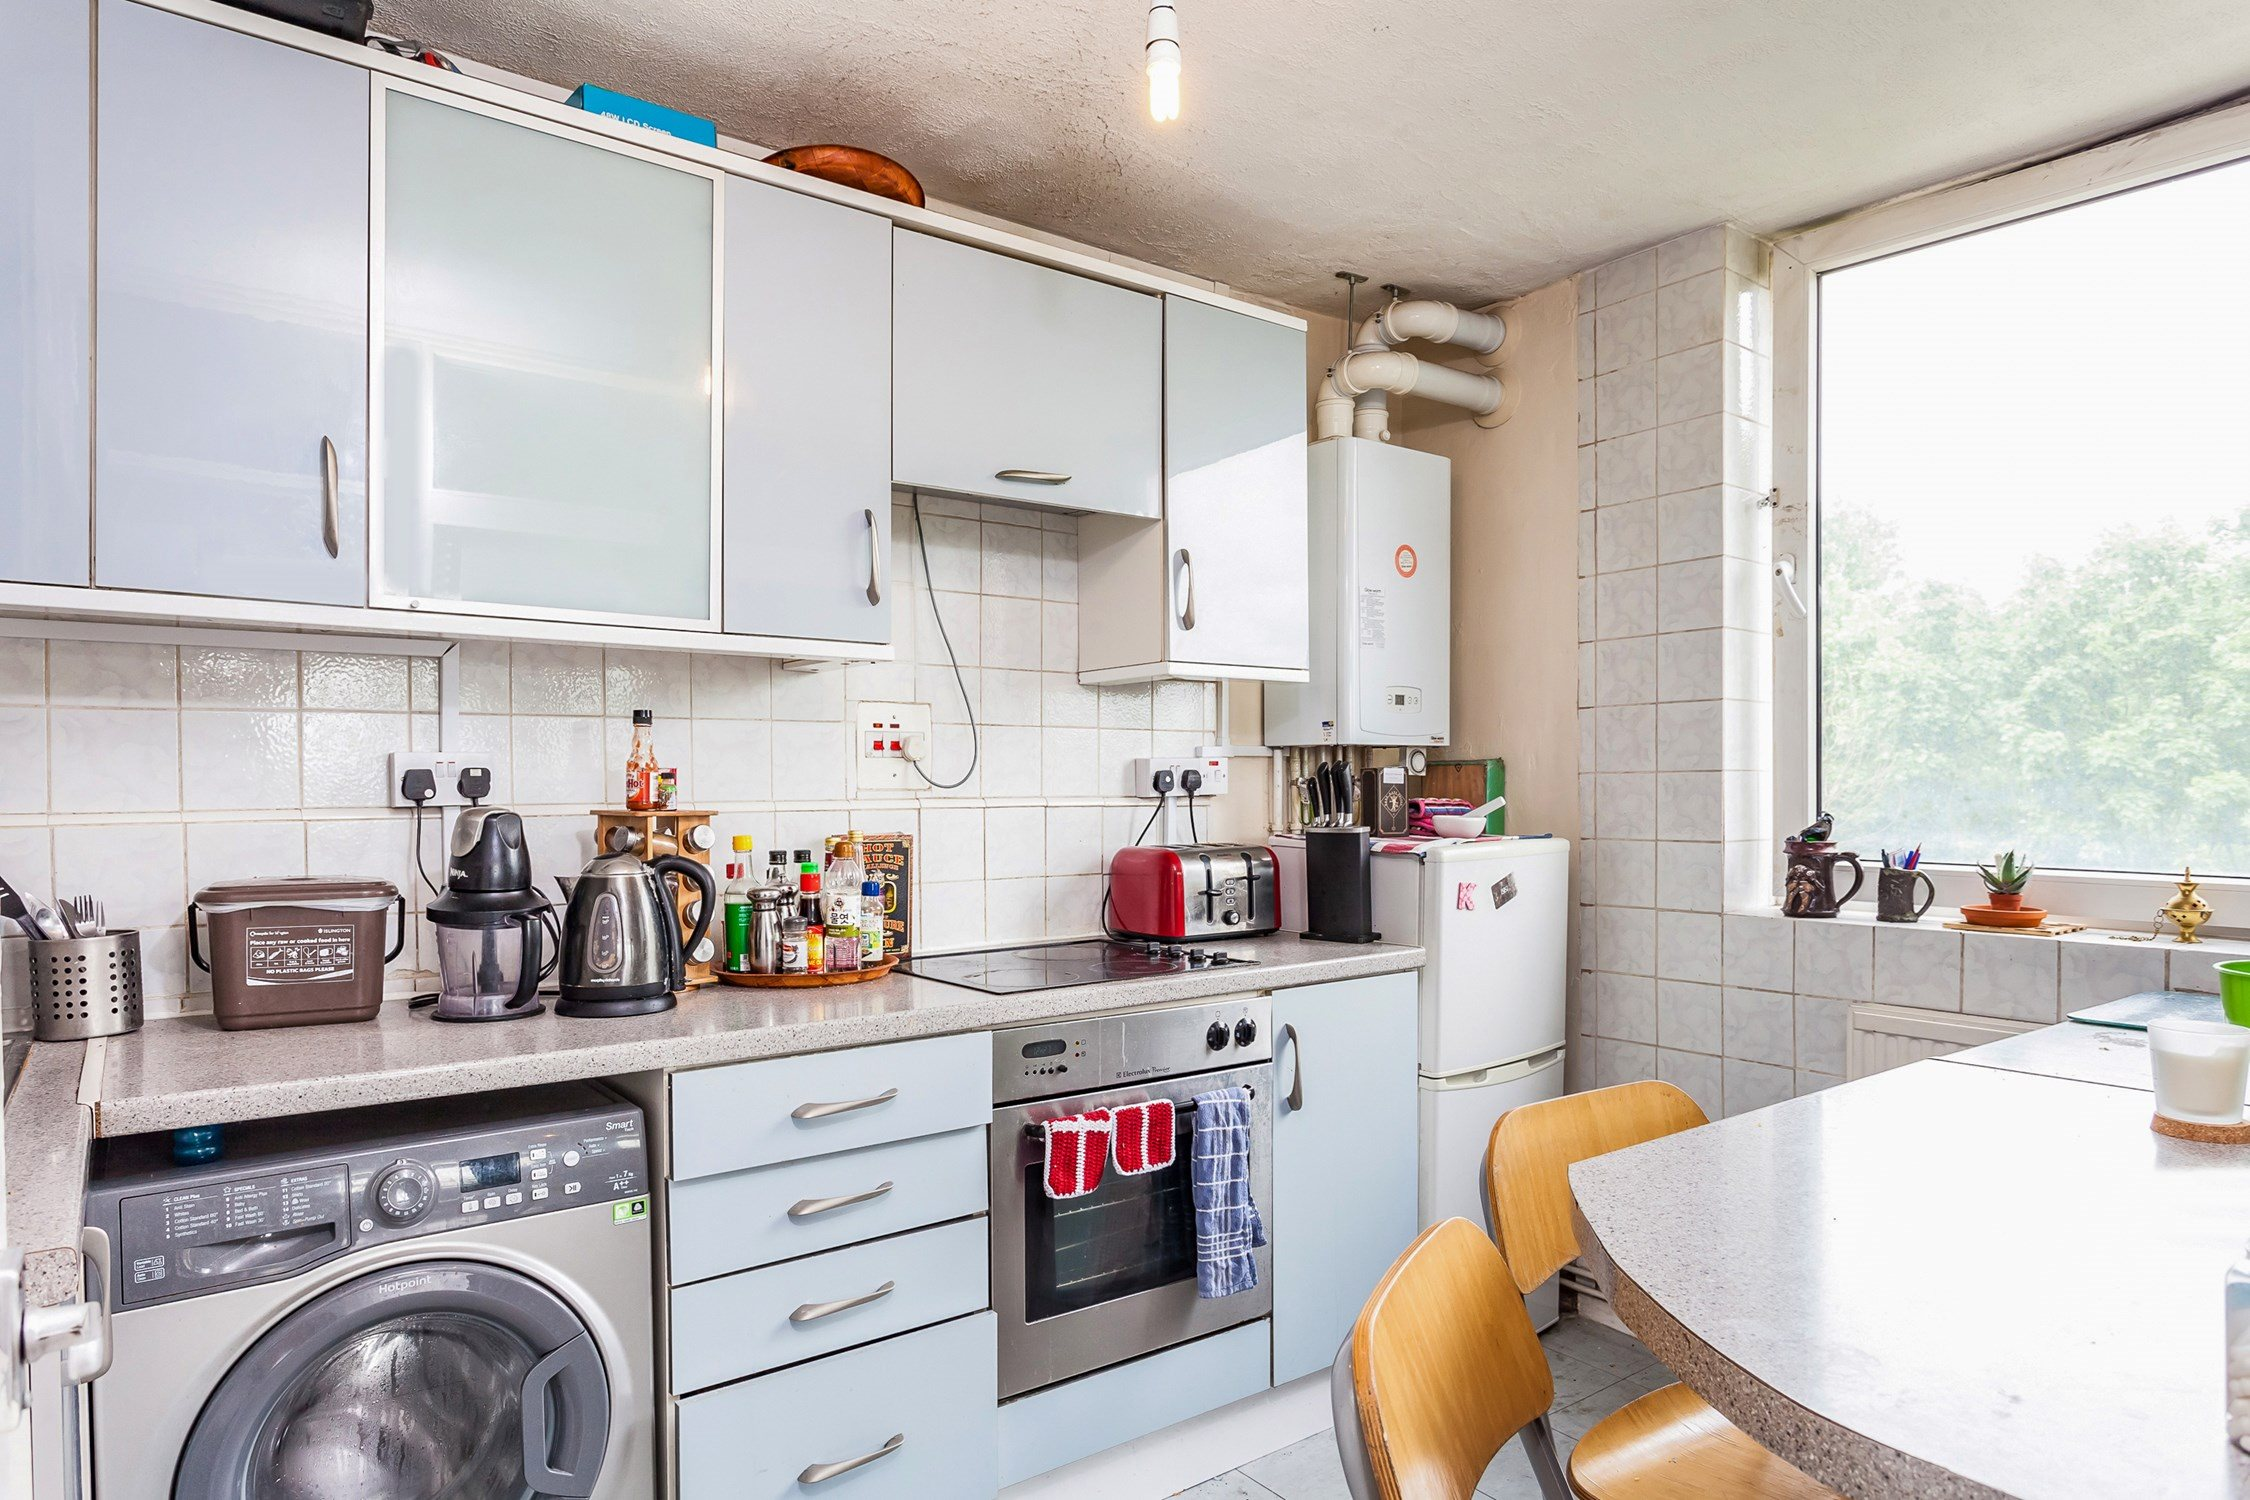 Portico - 1 Bedroom Flat for sale in Holloway: Rowstock Gardens, N7 ...